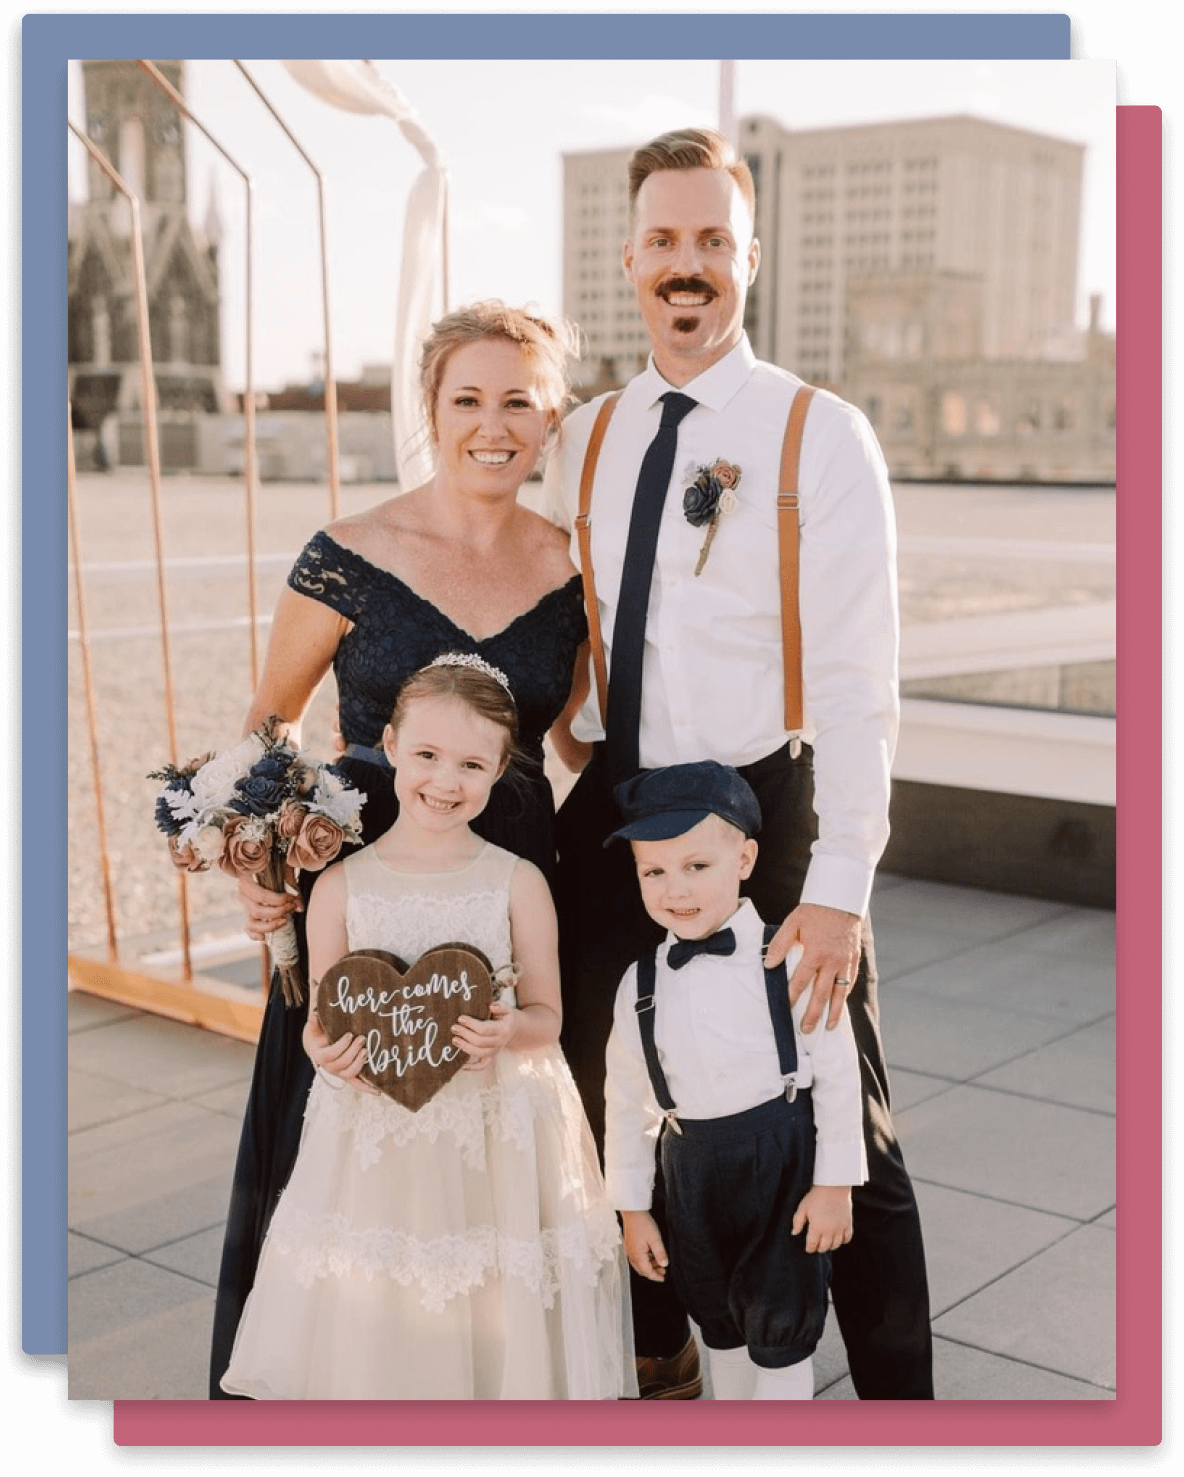 Cory Runnells, his wife, and two children.